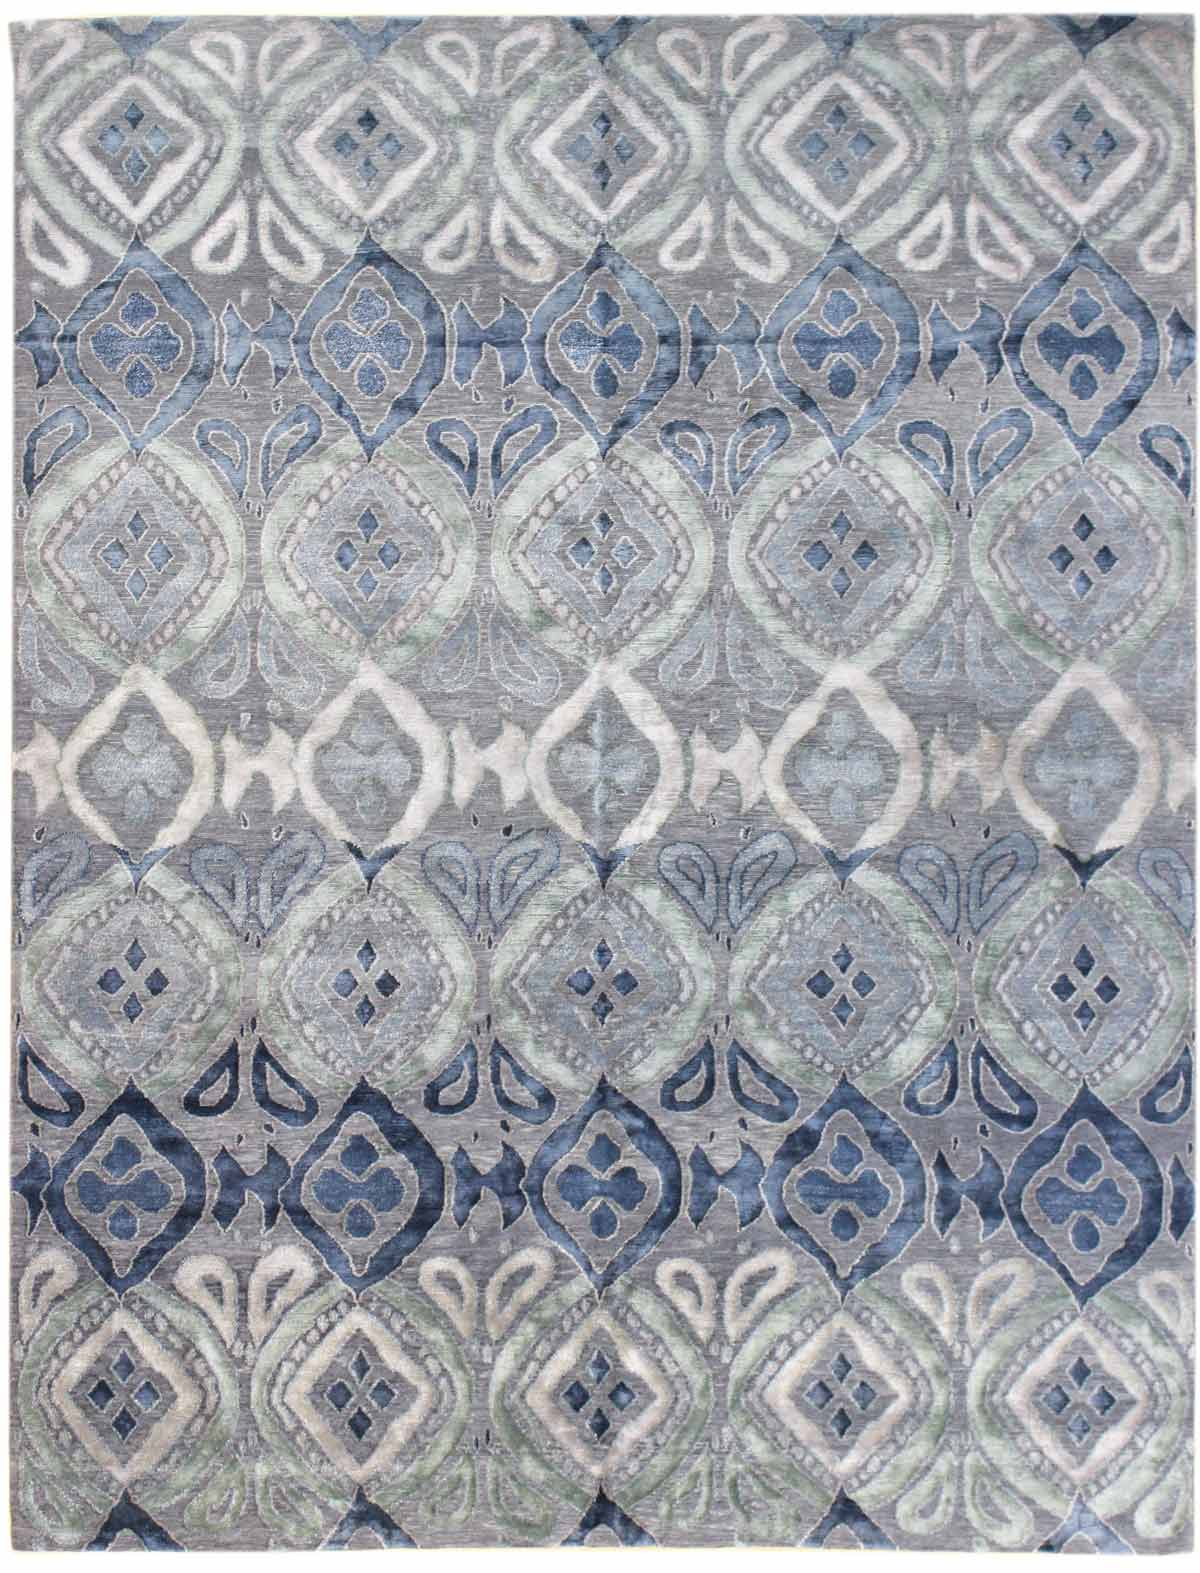 transitional rugs the blues gallery: transitional design rug, hand-knotted in nepal; size: XQMKNLY